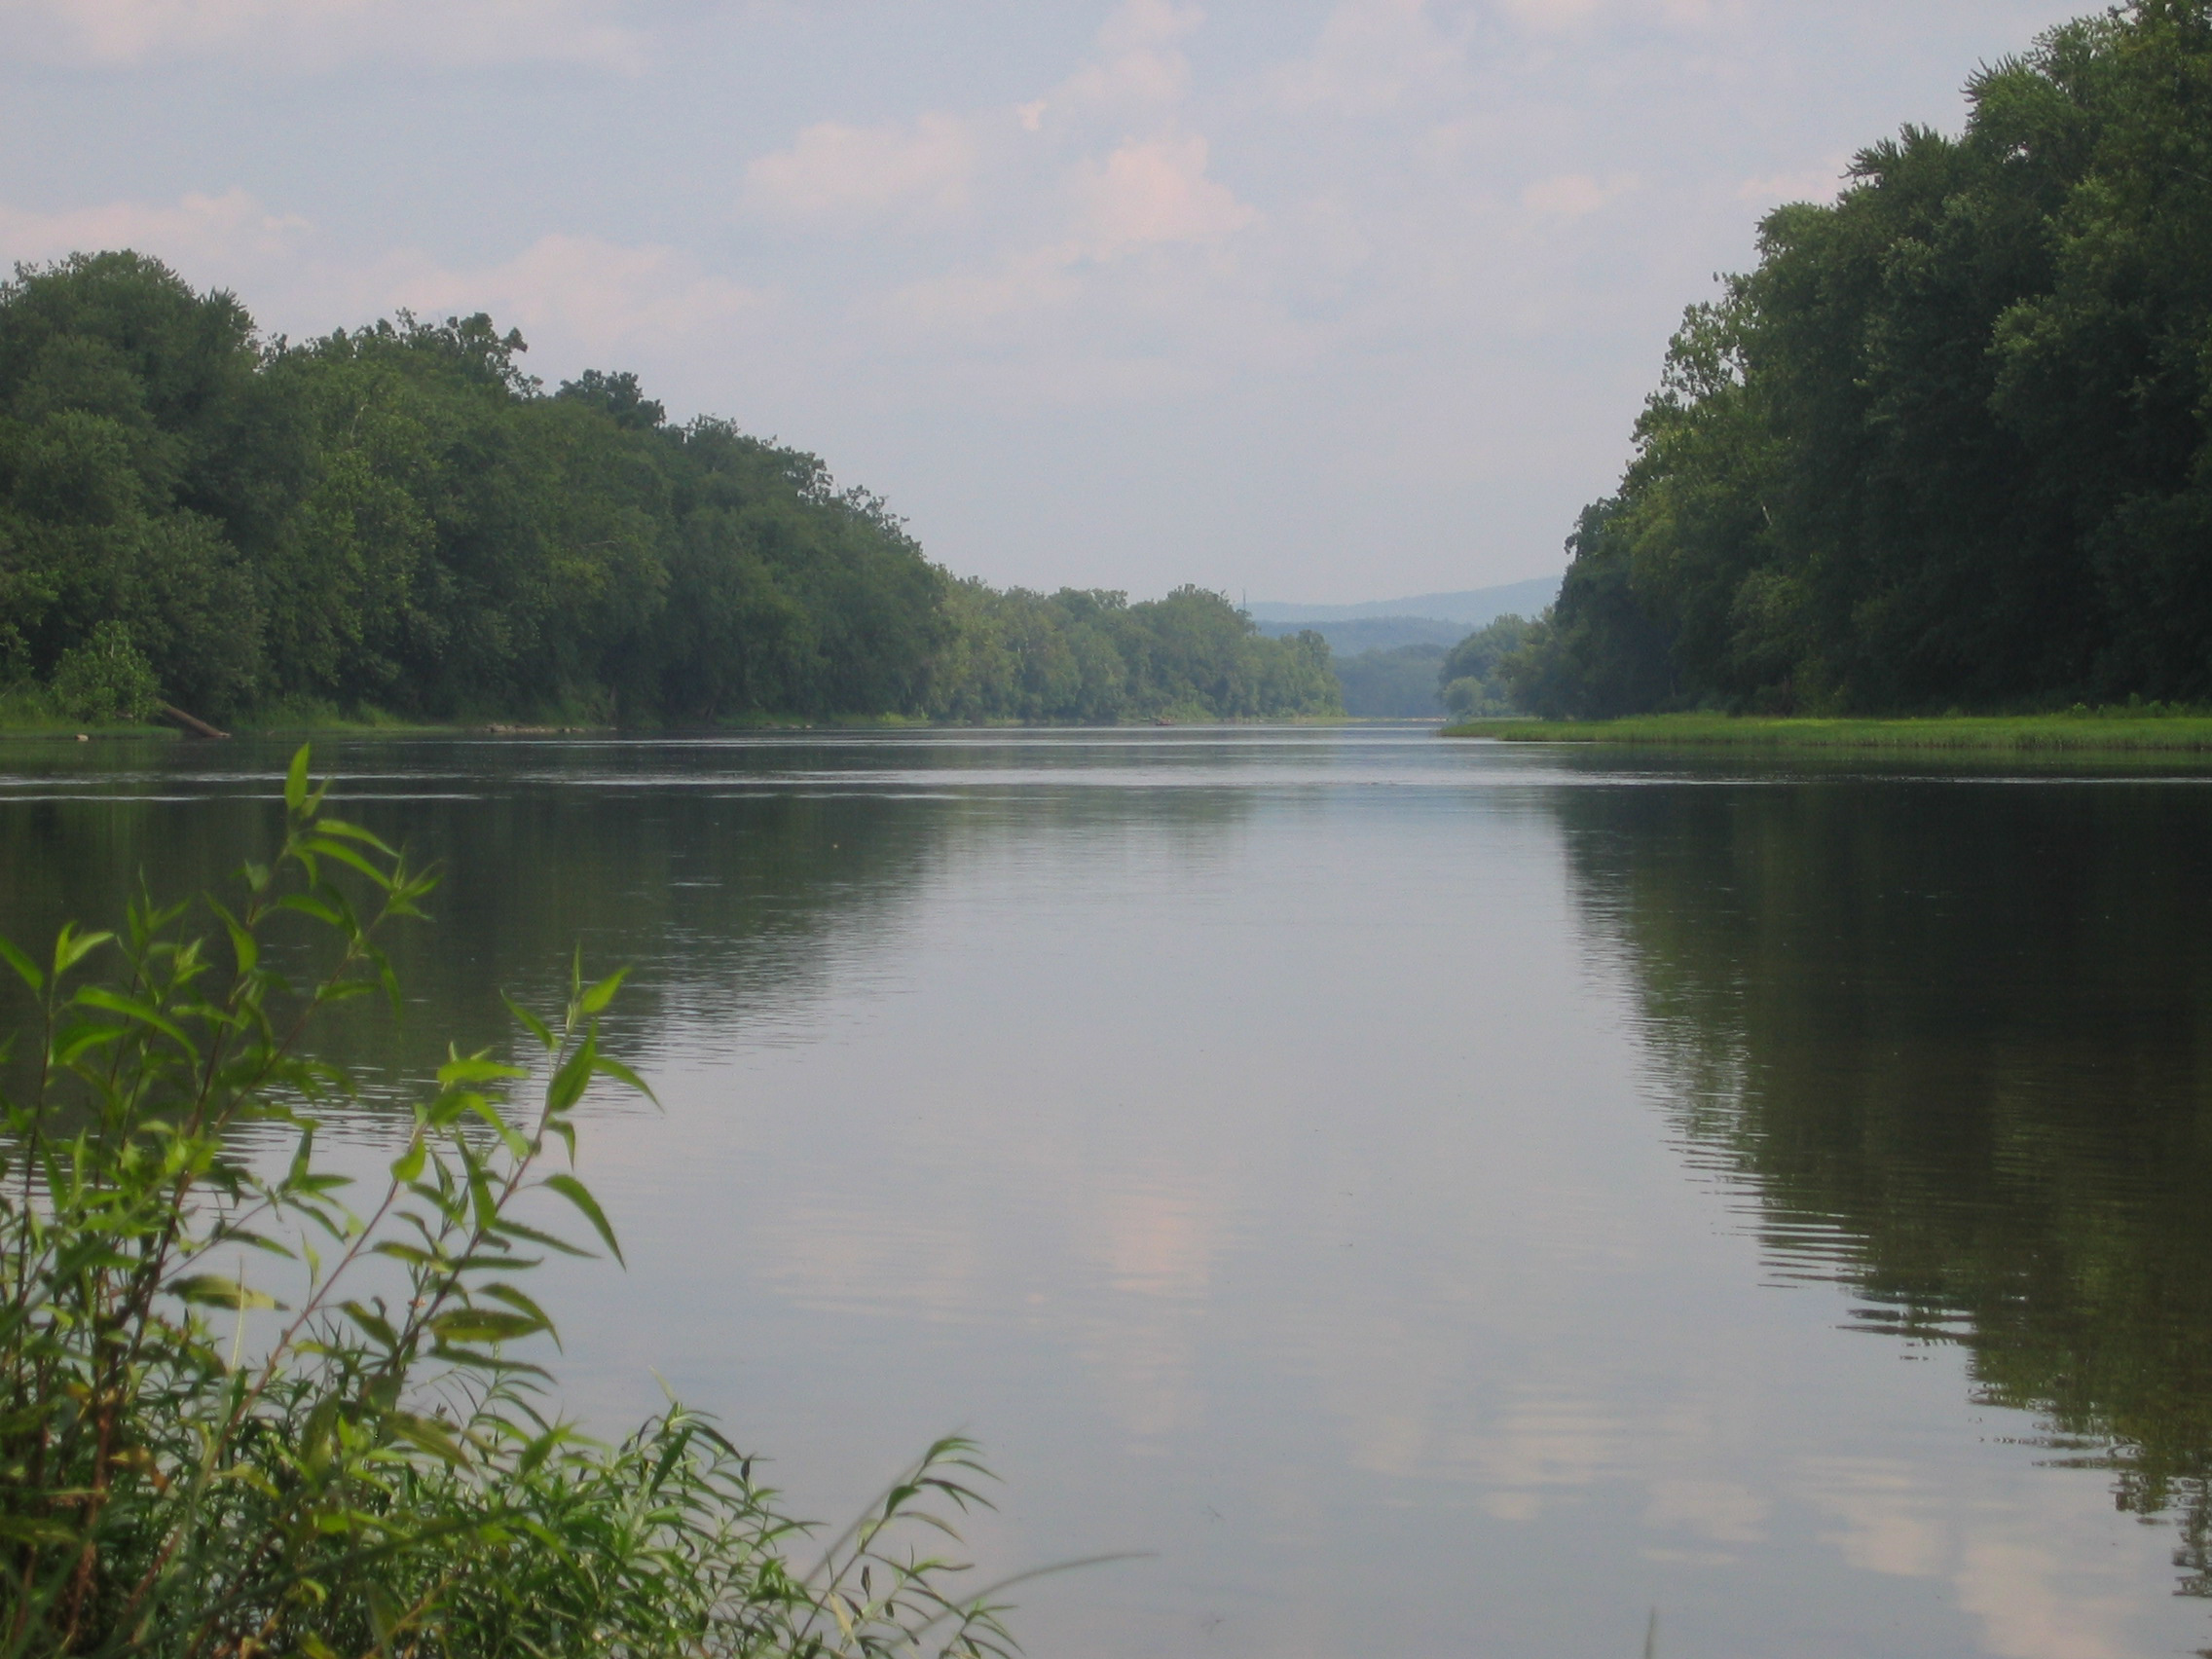 File:Hancock potomac river.jpg  Wikimedia Commons